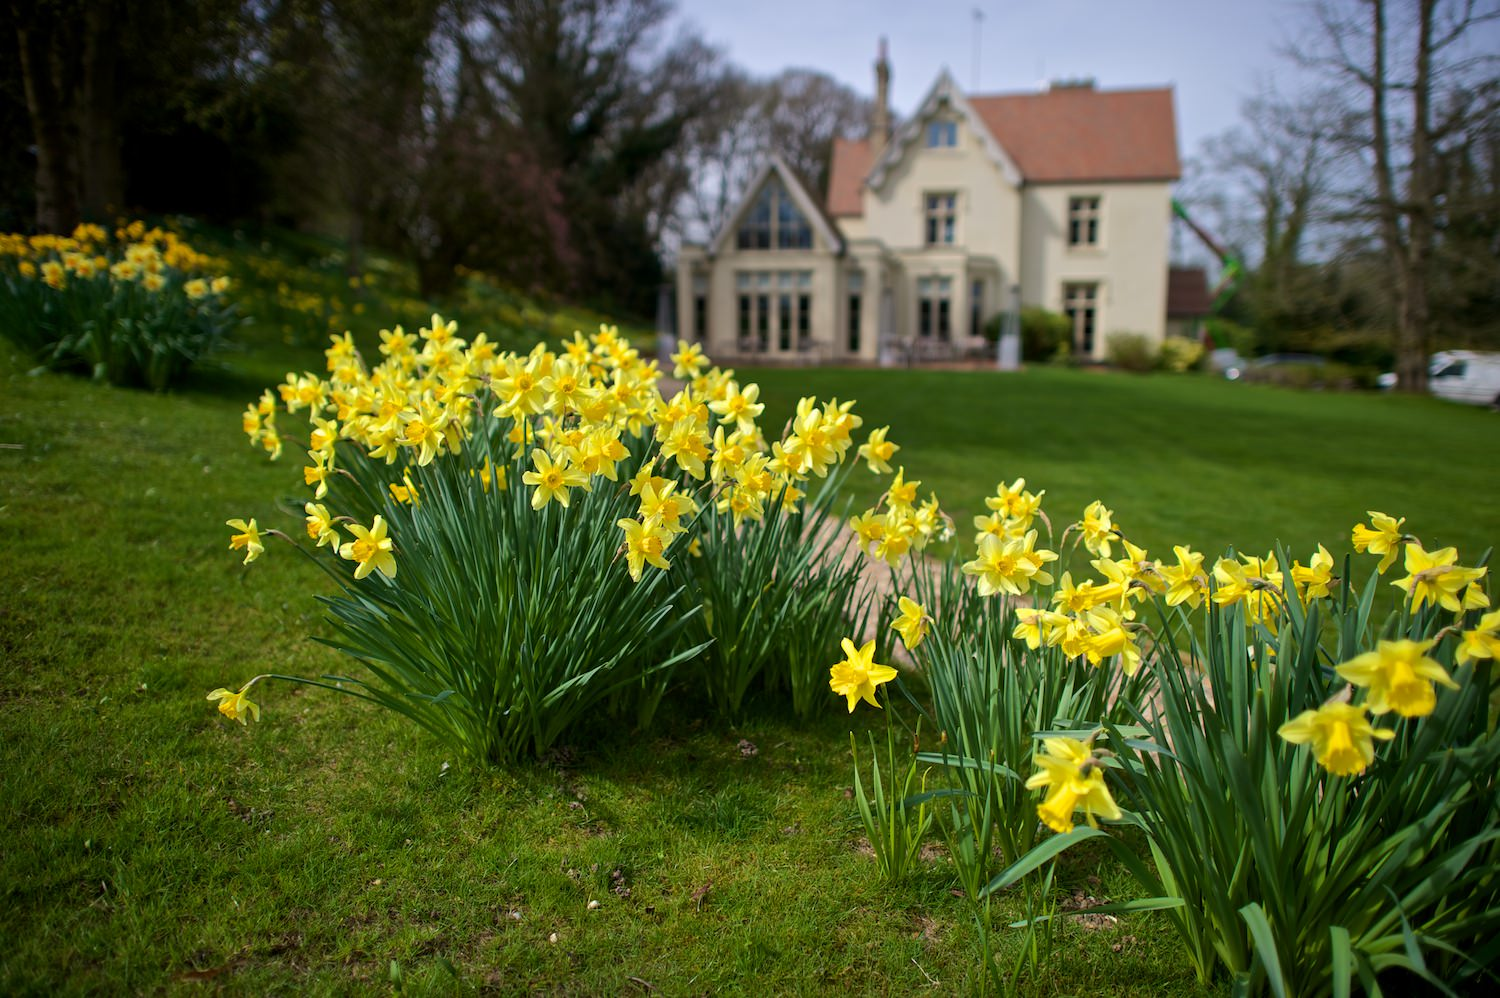 Easter 2019 at Maison Talbooth in Dedham, Essex